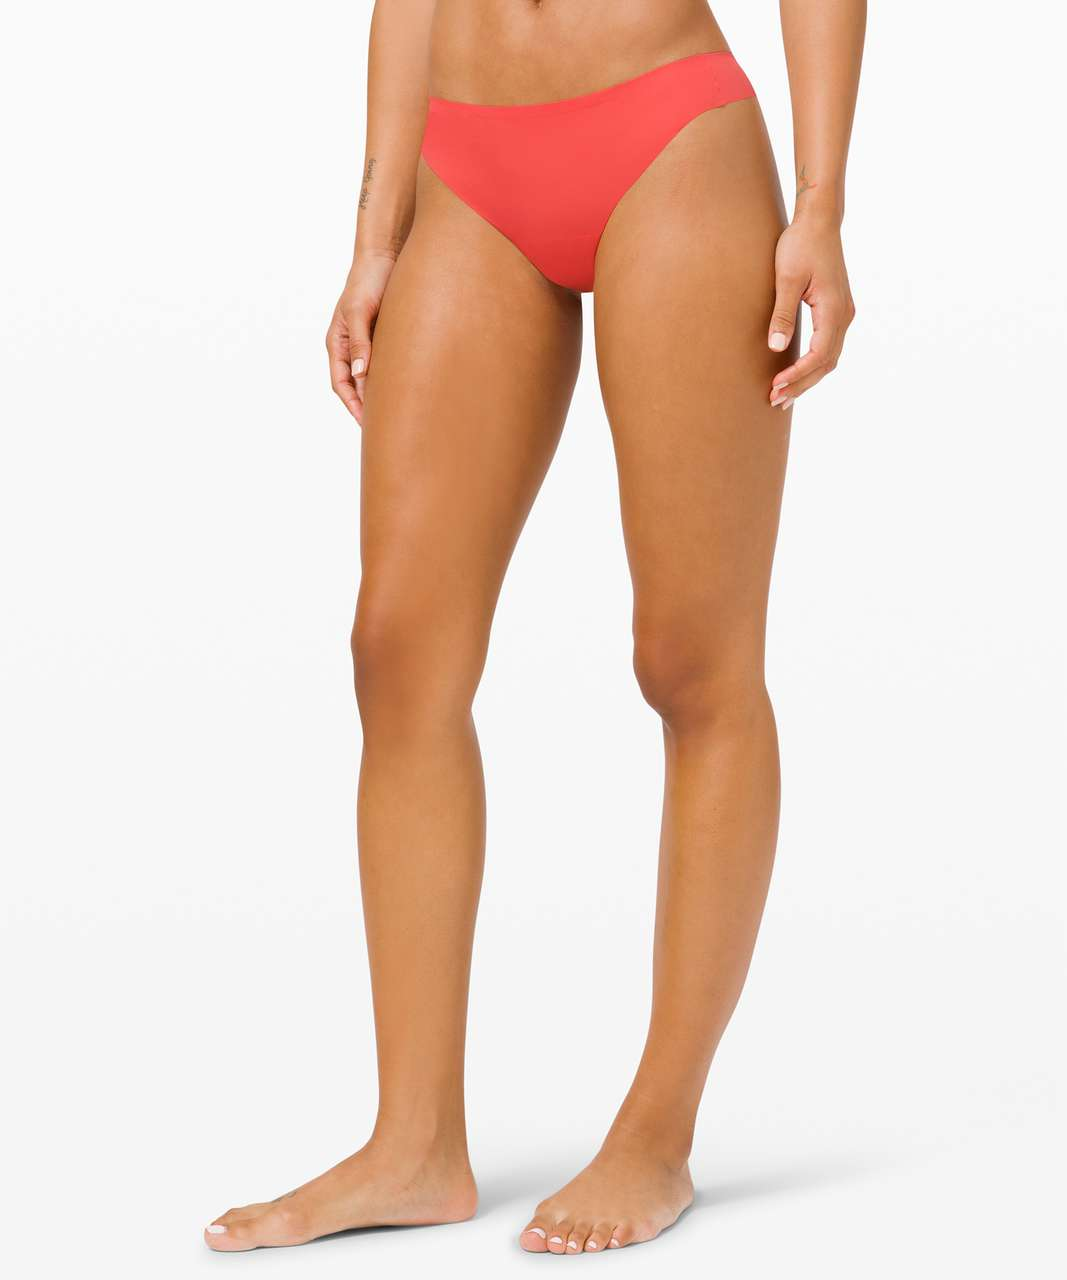 Lululemon Smooth Seamless Thong *3 Pack - Black / Watermelon Red / Misty Shell